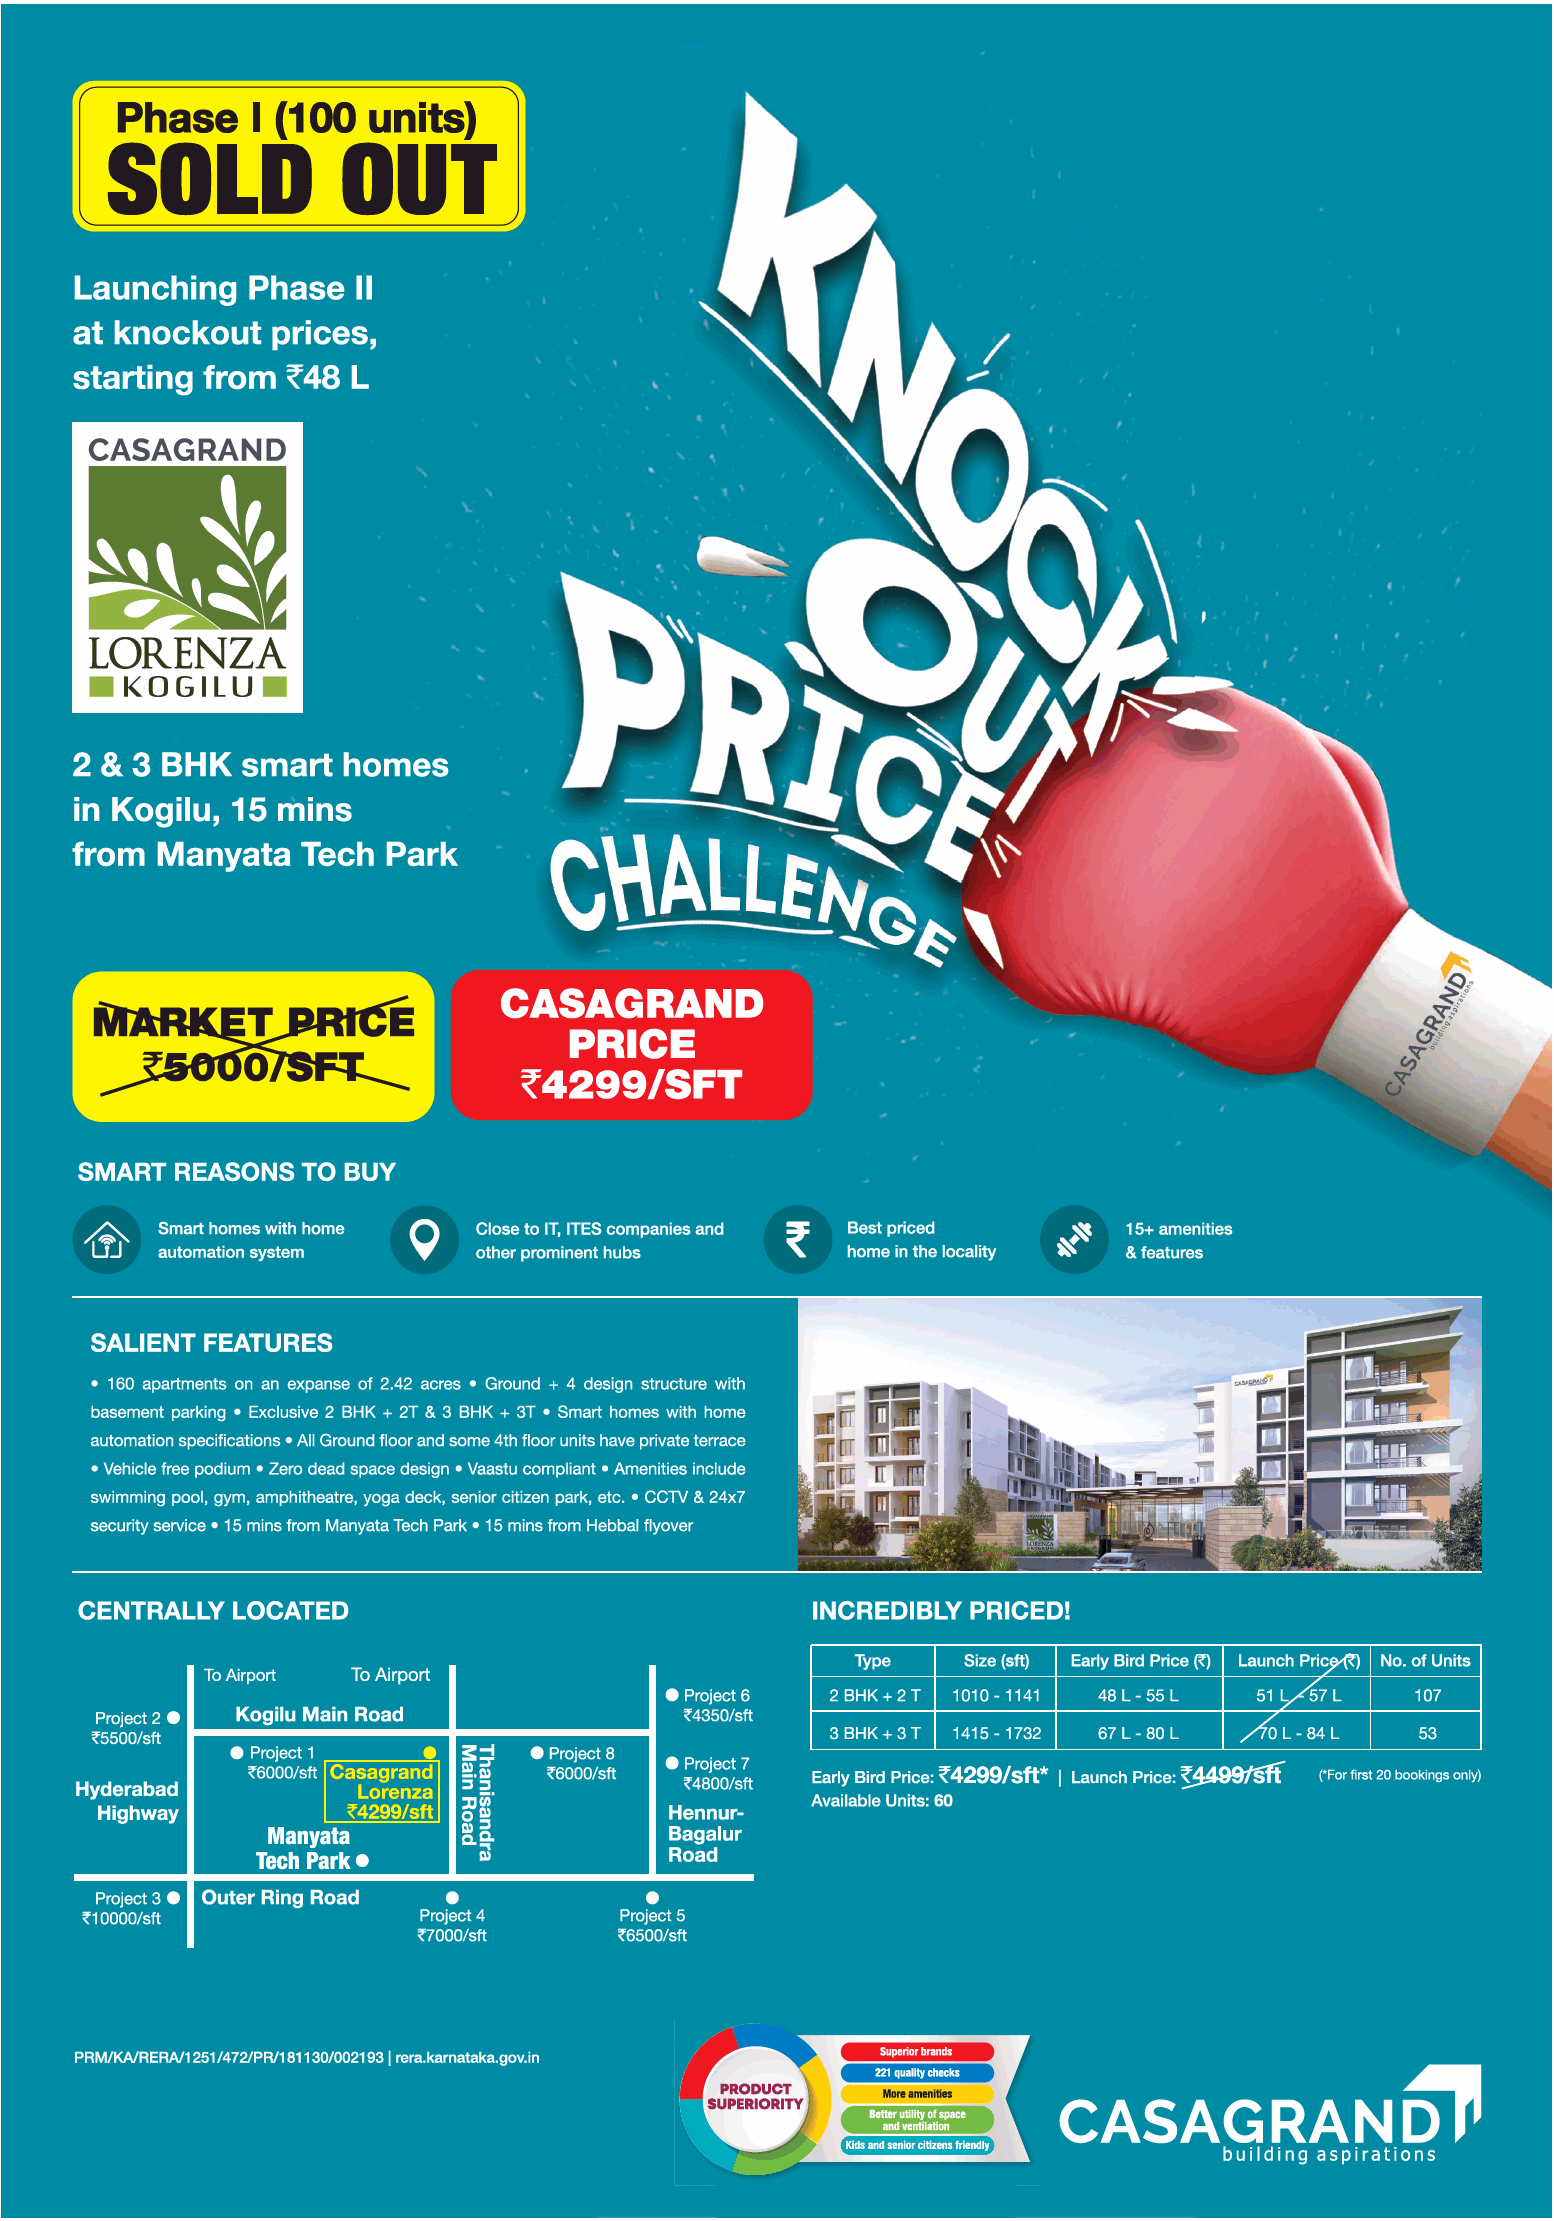 Launching phase 2 at knockout prices at Rs 49 lakhs at Casagrand Lorenza in Bangalore